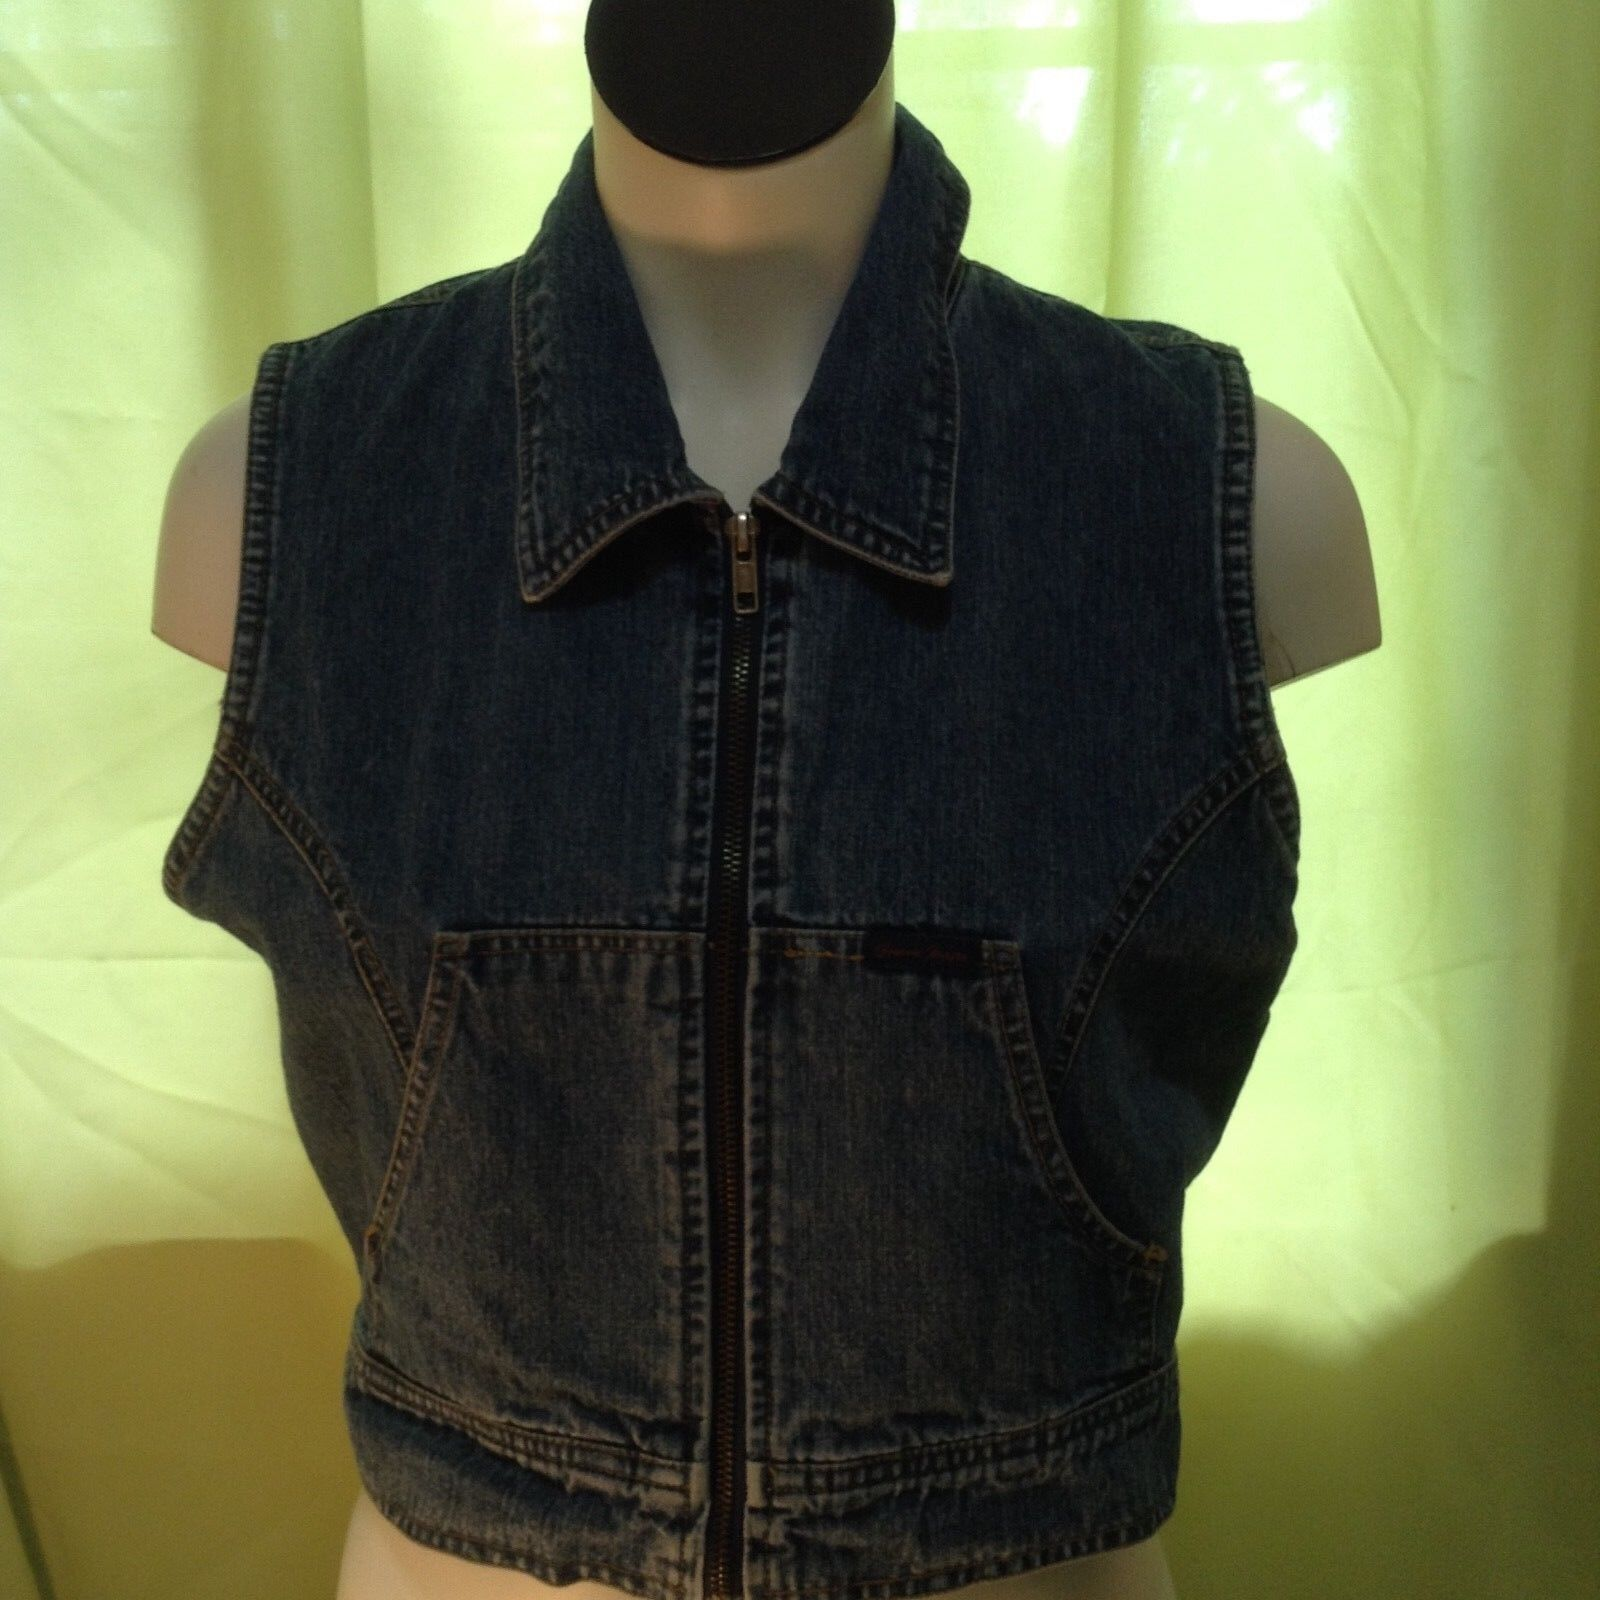 Vintage Guess USA Women's Jean Vest Size Small Style 11810 RN62136